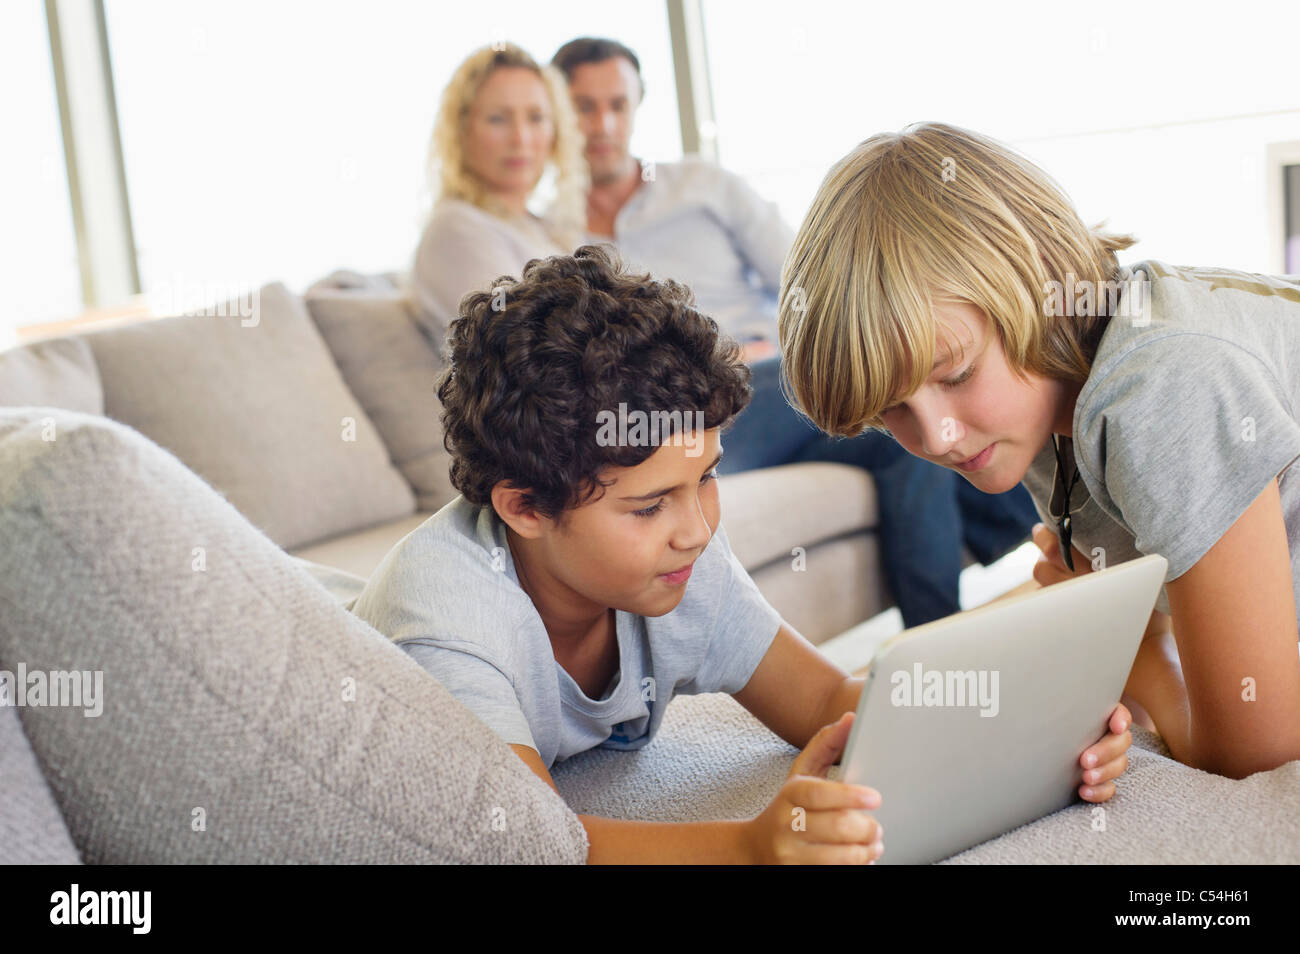 Brothers using a digital tablet with their parents looking at them - Stock Image